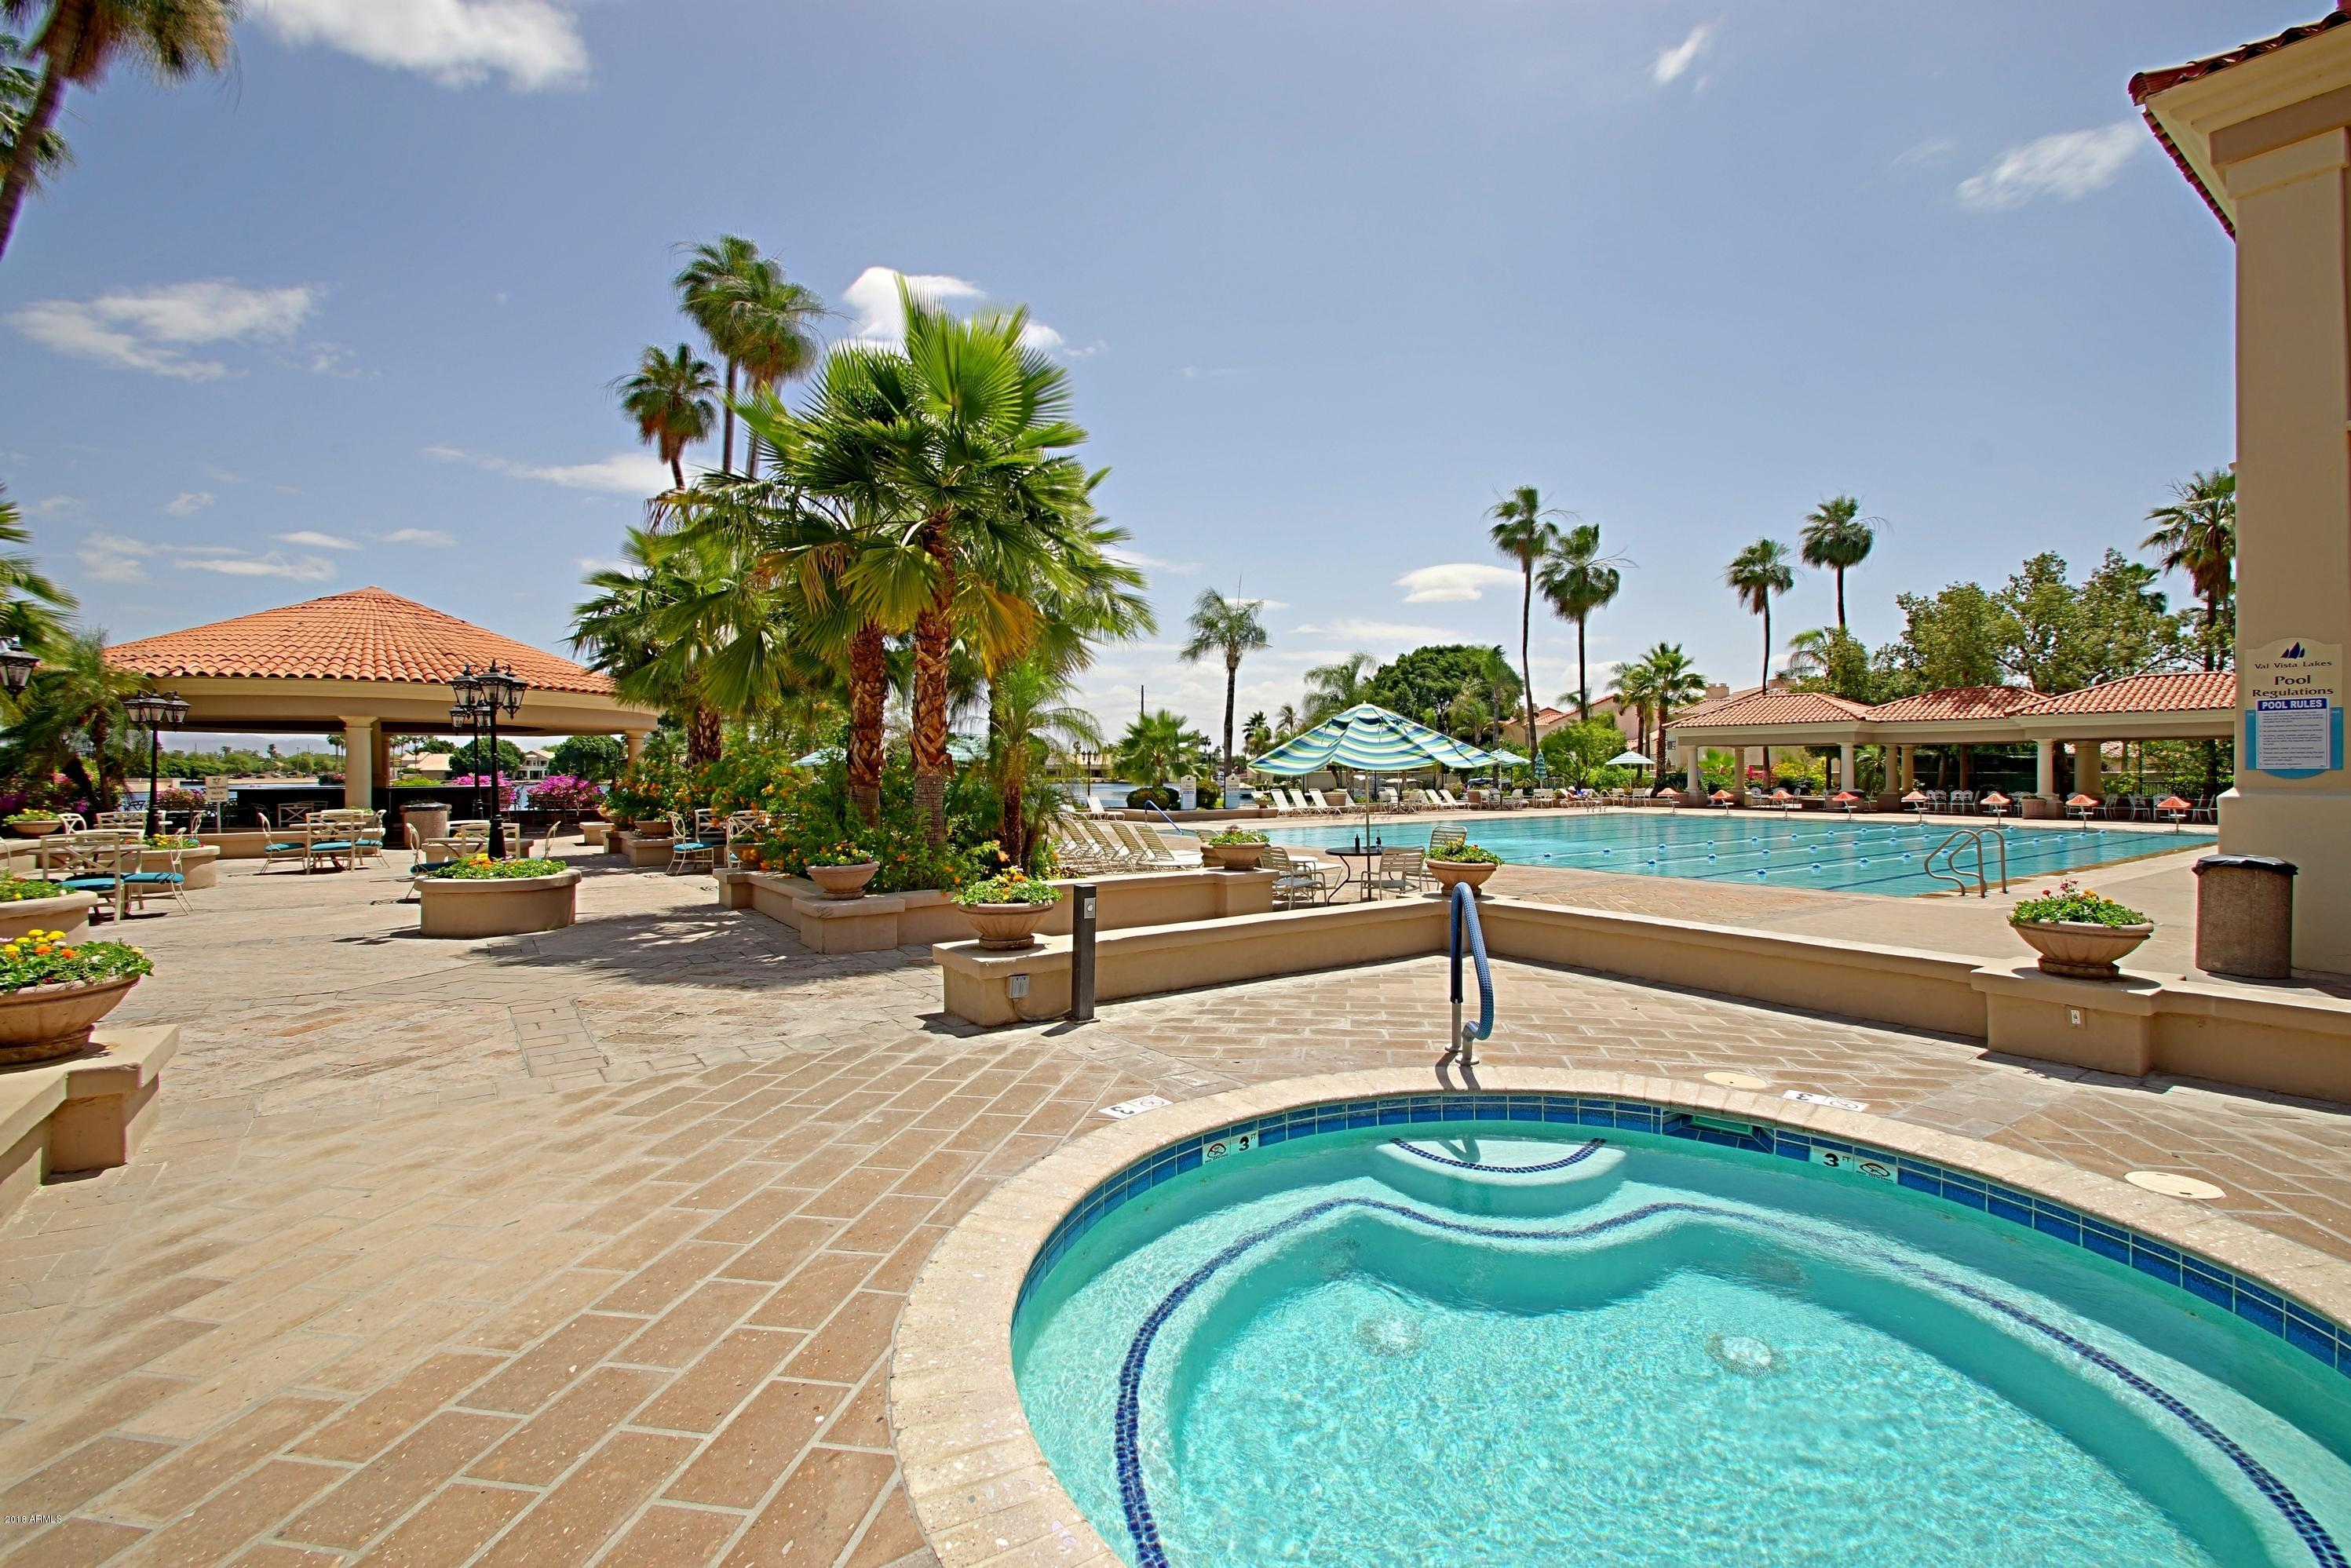 MLS 5775809 1700 E LAKESIDE Drive Unit 14, Gilbert, AZ 85234 Gilbert AZ Val Vista Lakes